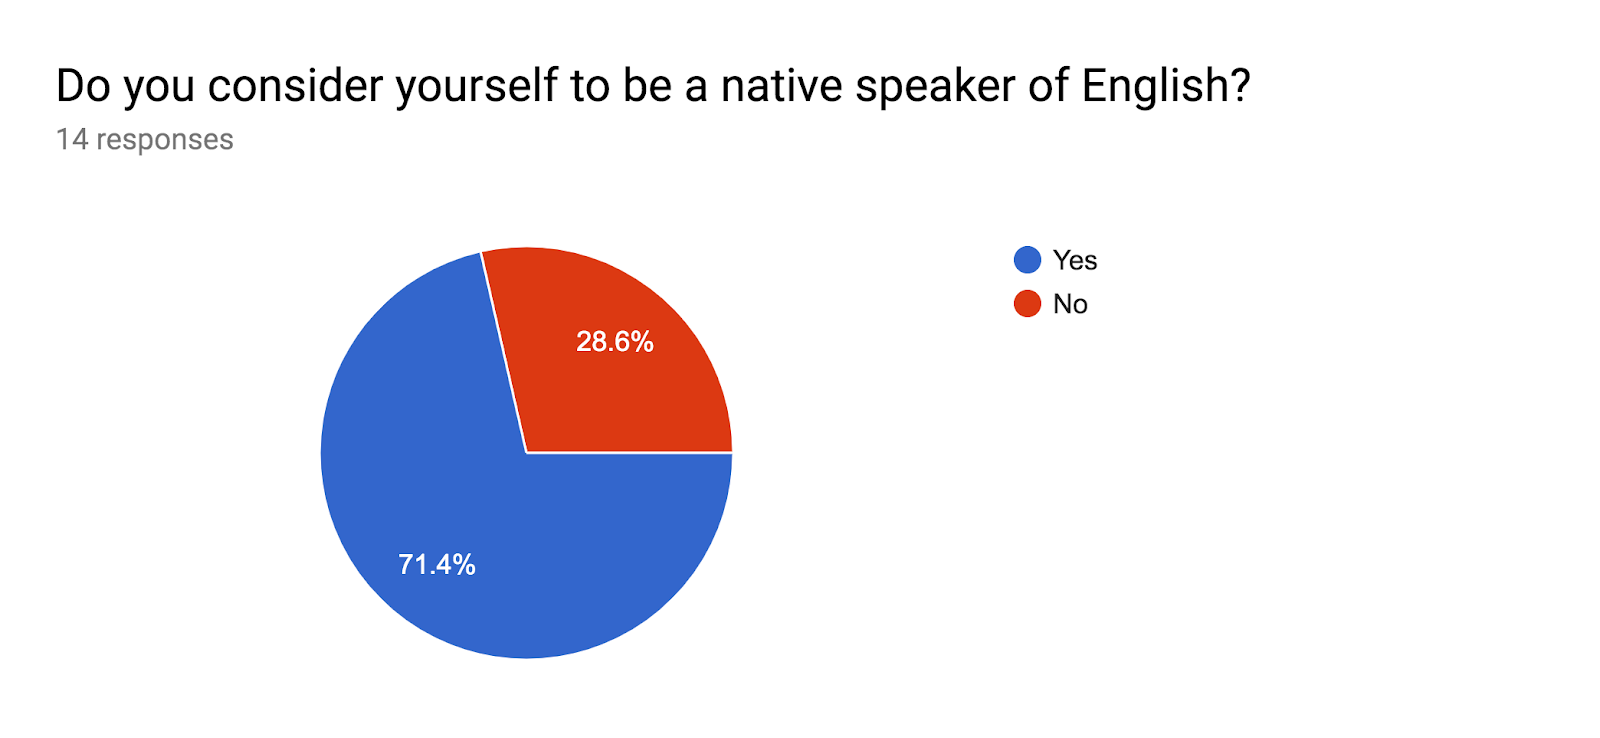 Forms response chart. Question title: Do you consider yourself to be a native speaker of English?. Number of responses: 14 responses.